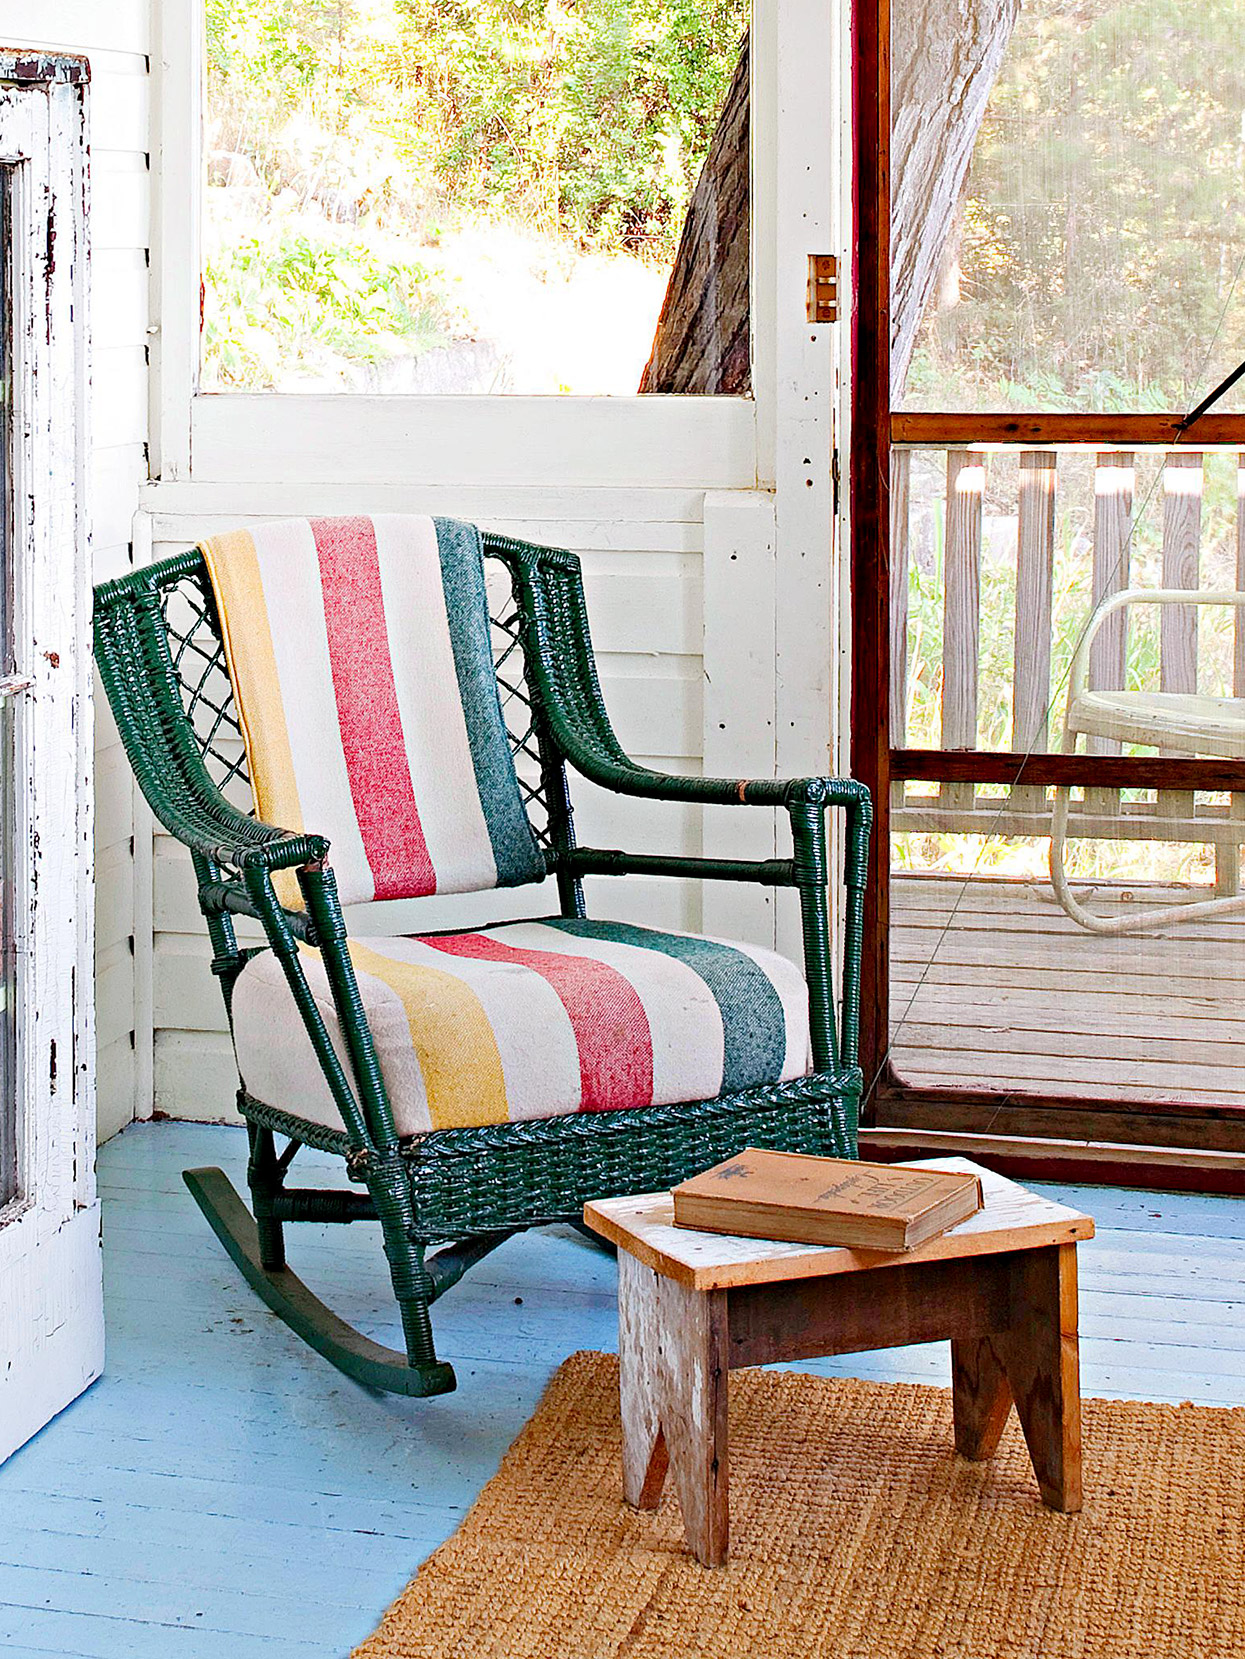 wicker chair with old camp blanket on rustic enclosed porch